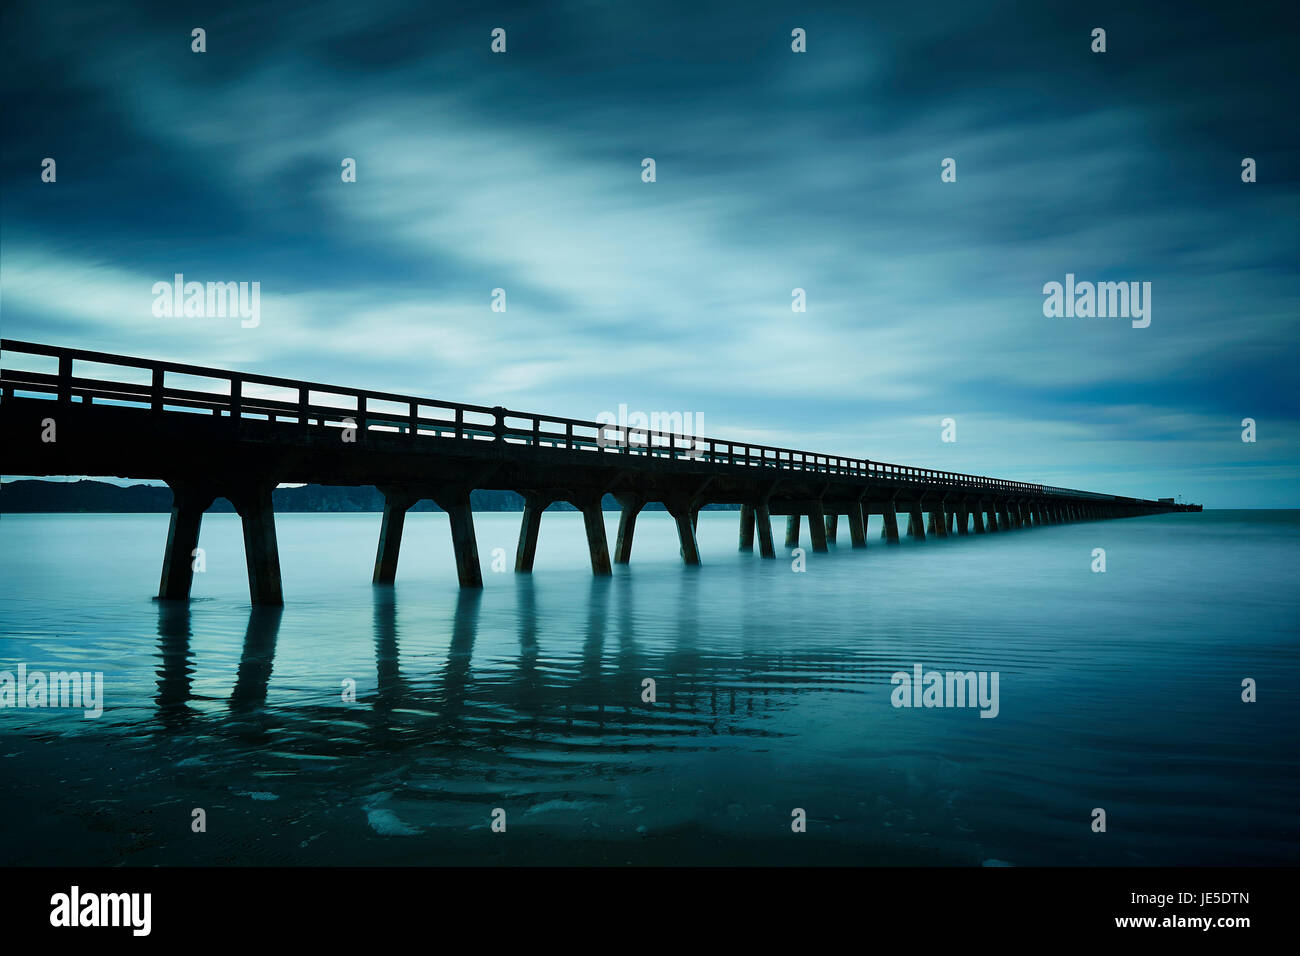 Tolaga bay Wharf , East coast - Stock Image